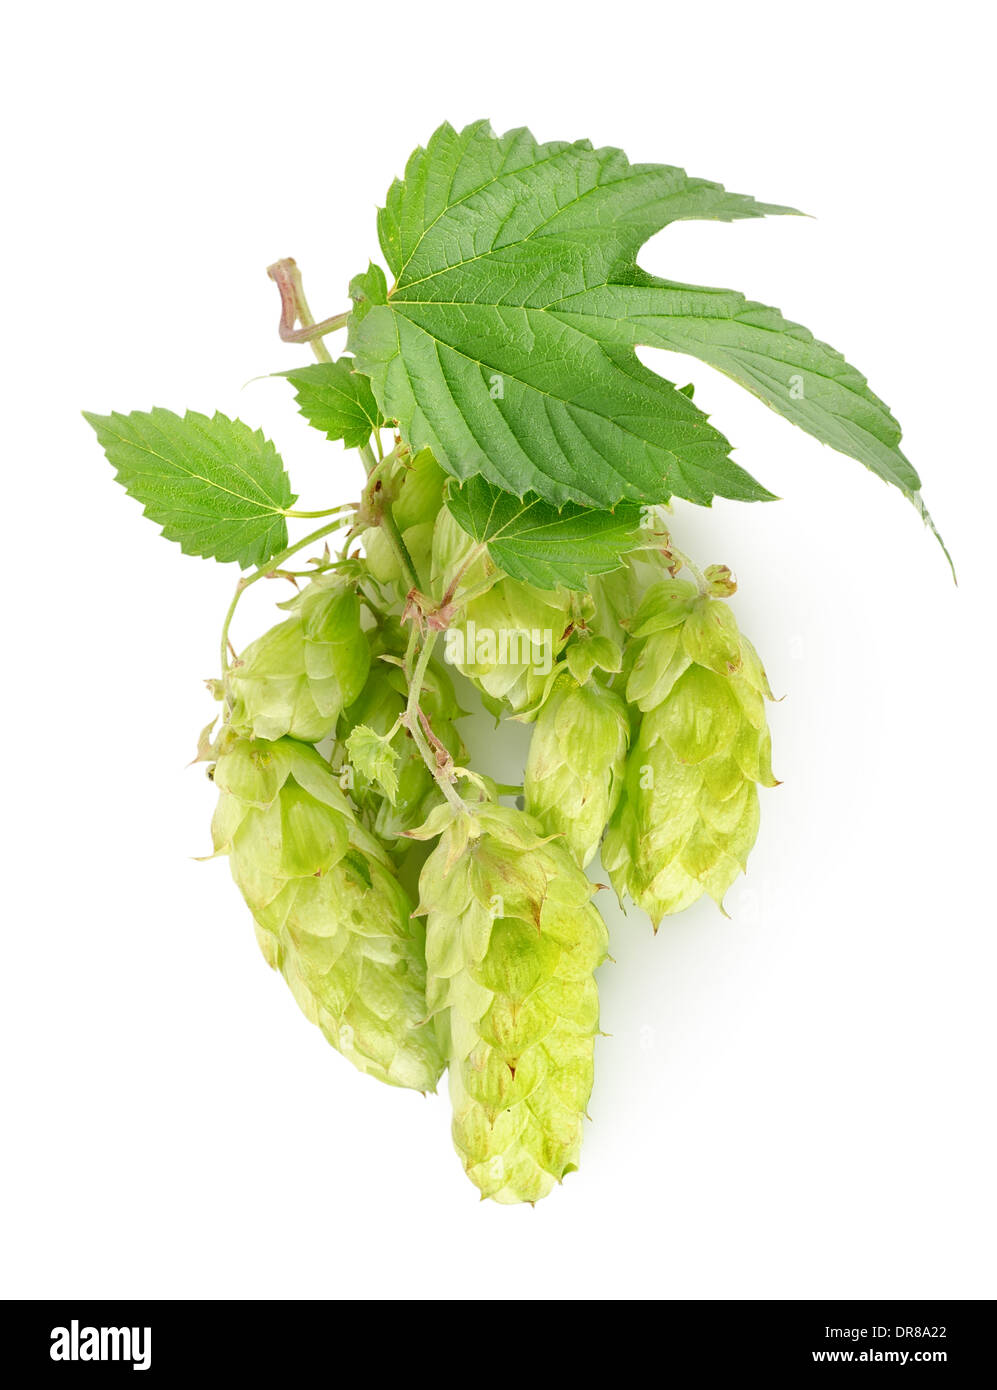 Branch of hops isolated on a white background - Stock Image